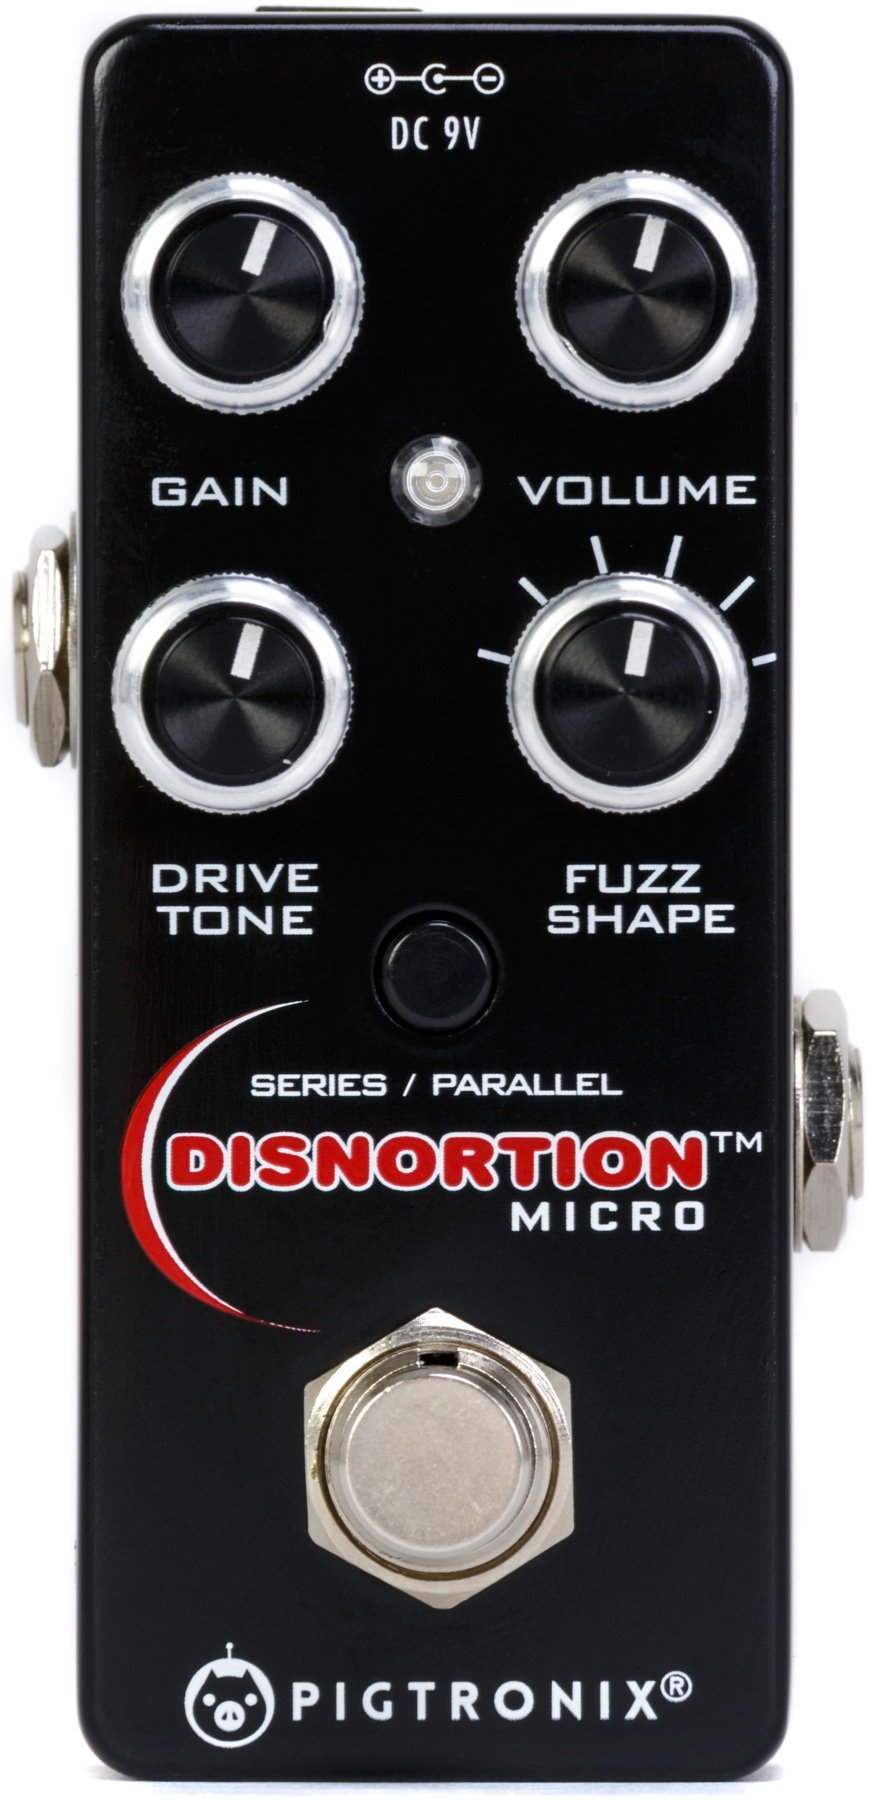 Pigtronix Disnortion Micro Analog Fuzz Overdrive Pedal Sweetwater Box Distortion 8211 Guitar Effect Image 1